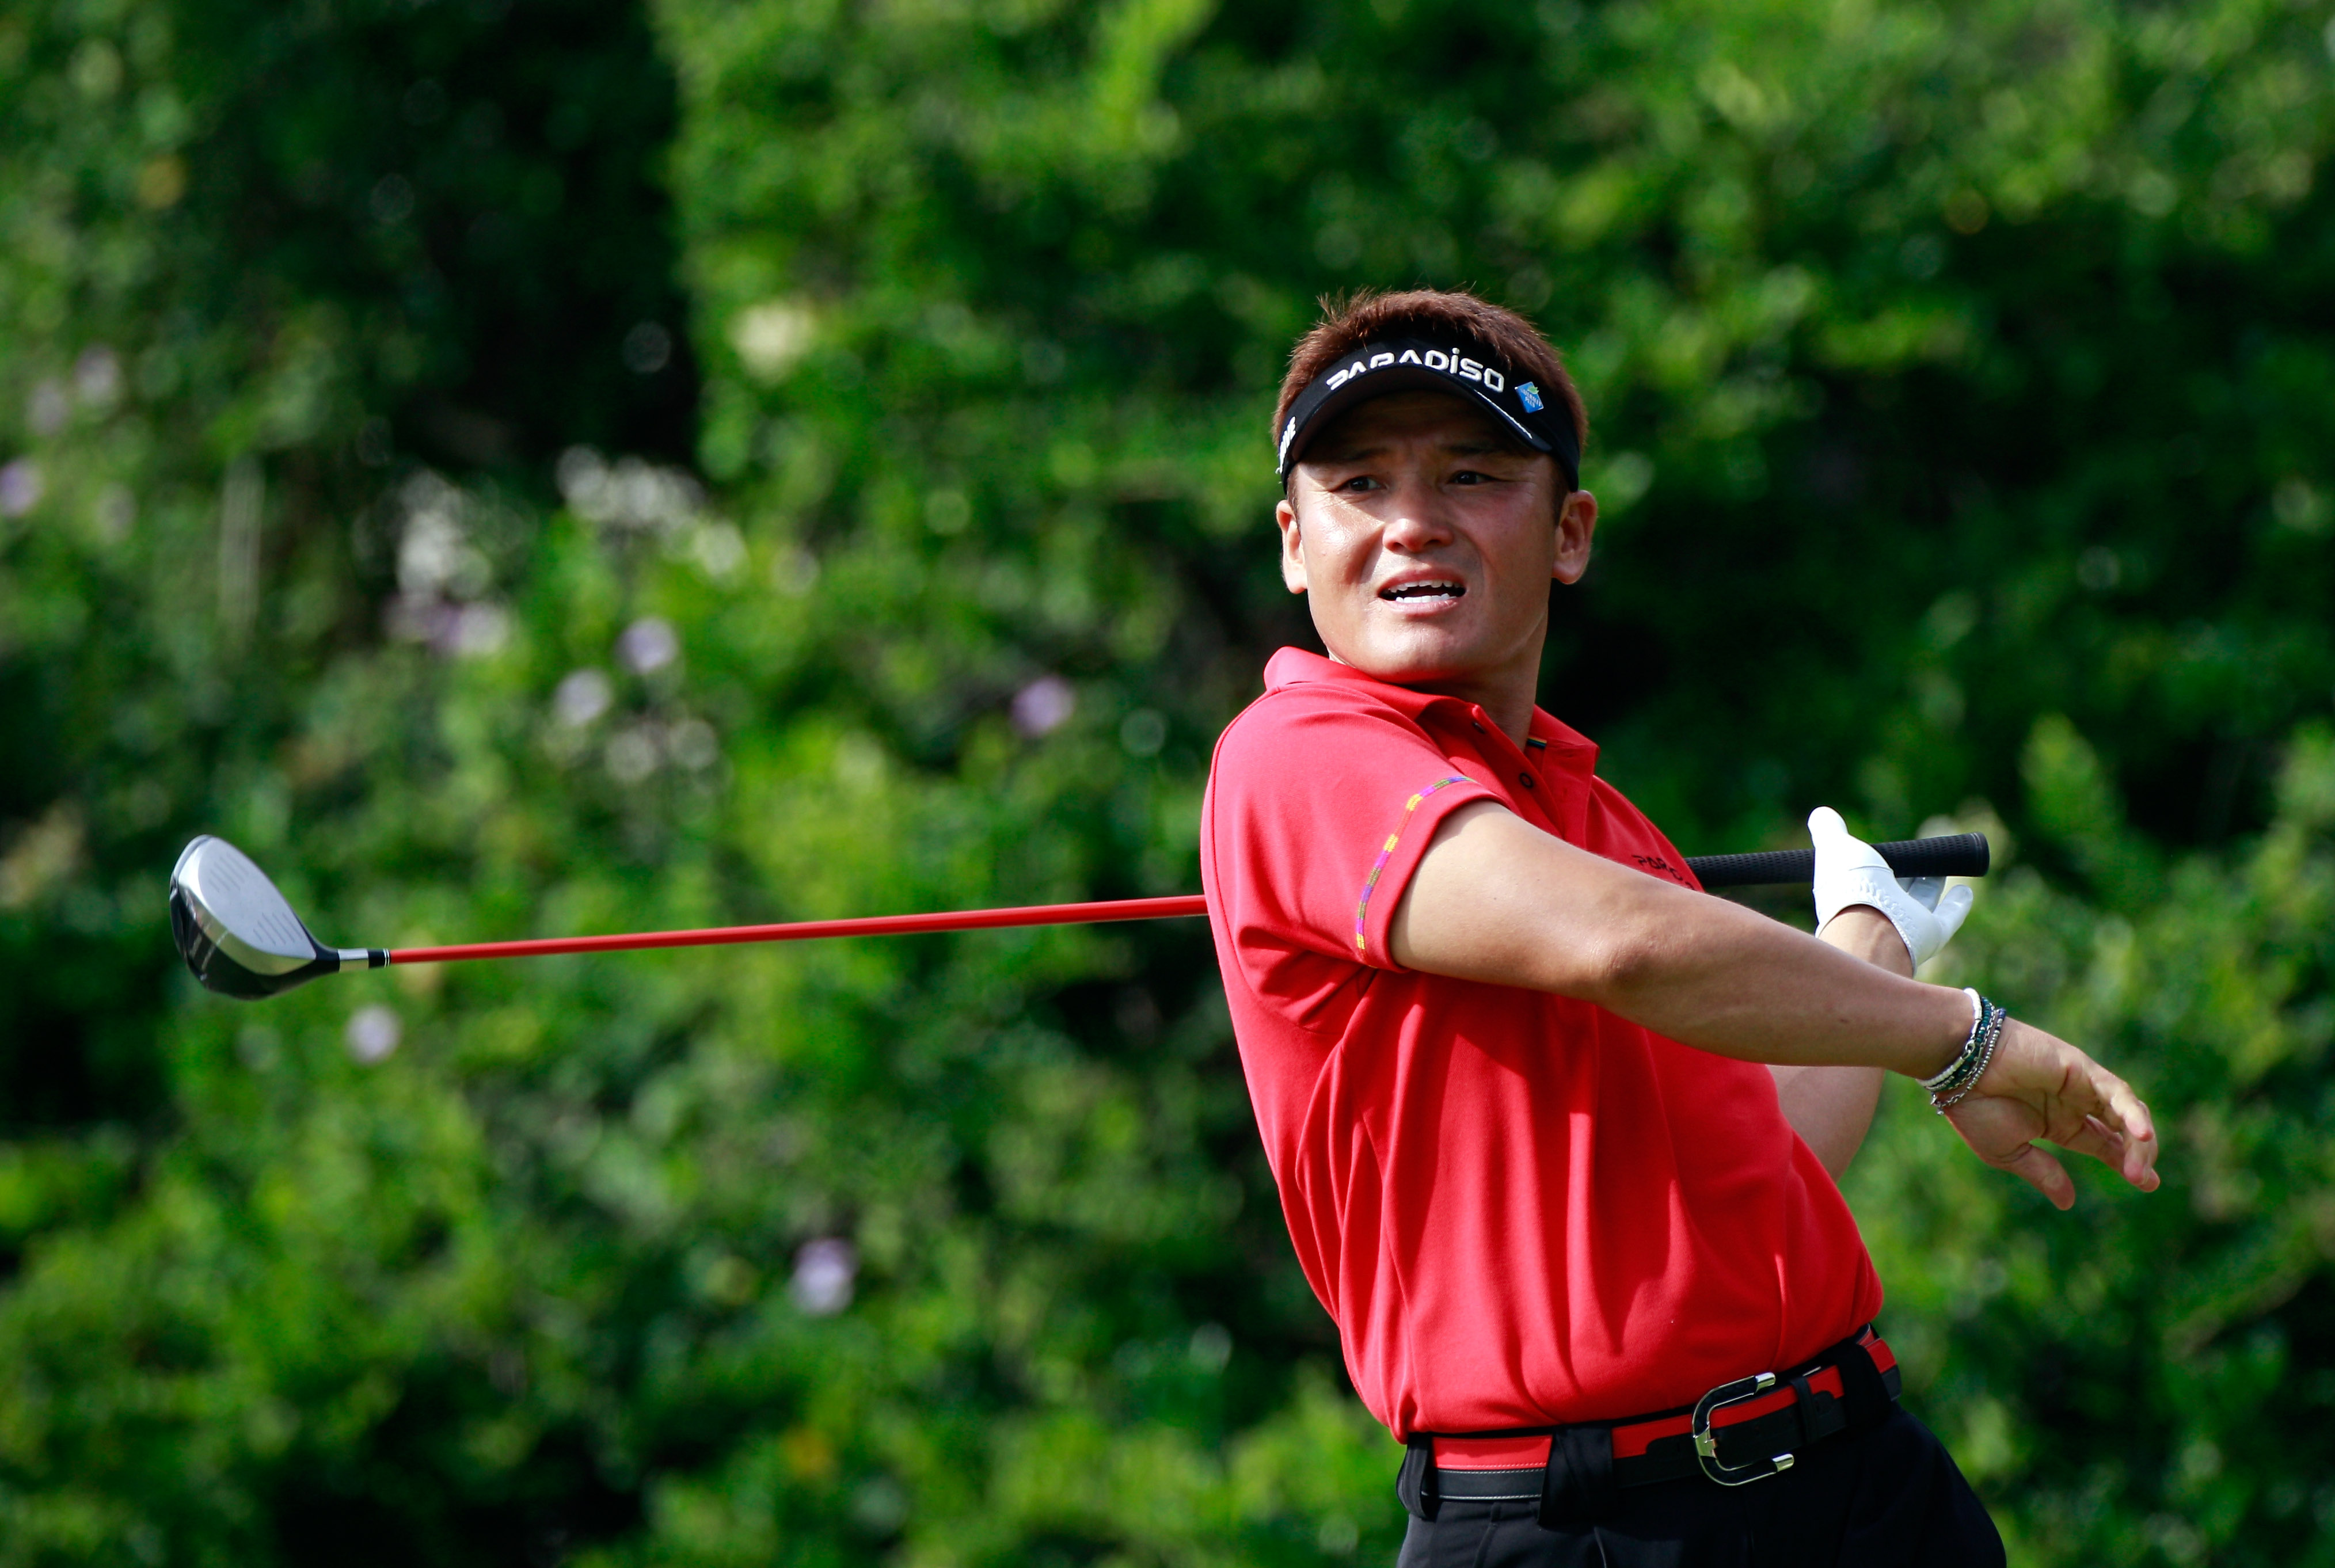 HONOLULU, HI - JANUARY 16:  Shigeki Maruyama of Japan plays a shot on the 6th hole during the final round of the Sony Open at Waialae Country Club on January 16, 2011 in Honolulu, Hawaii.  (Photo by Sam Greenwood/Getty Images)